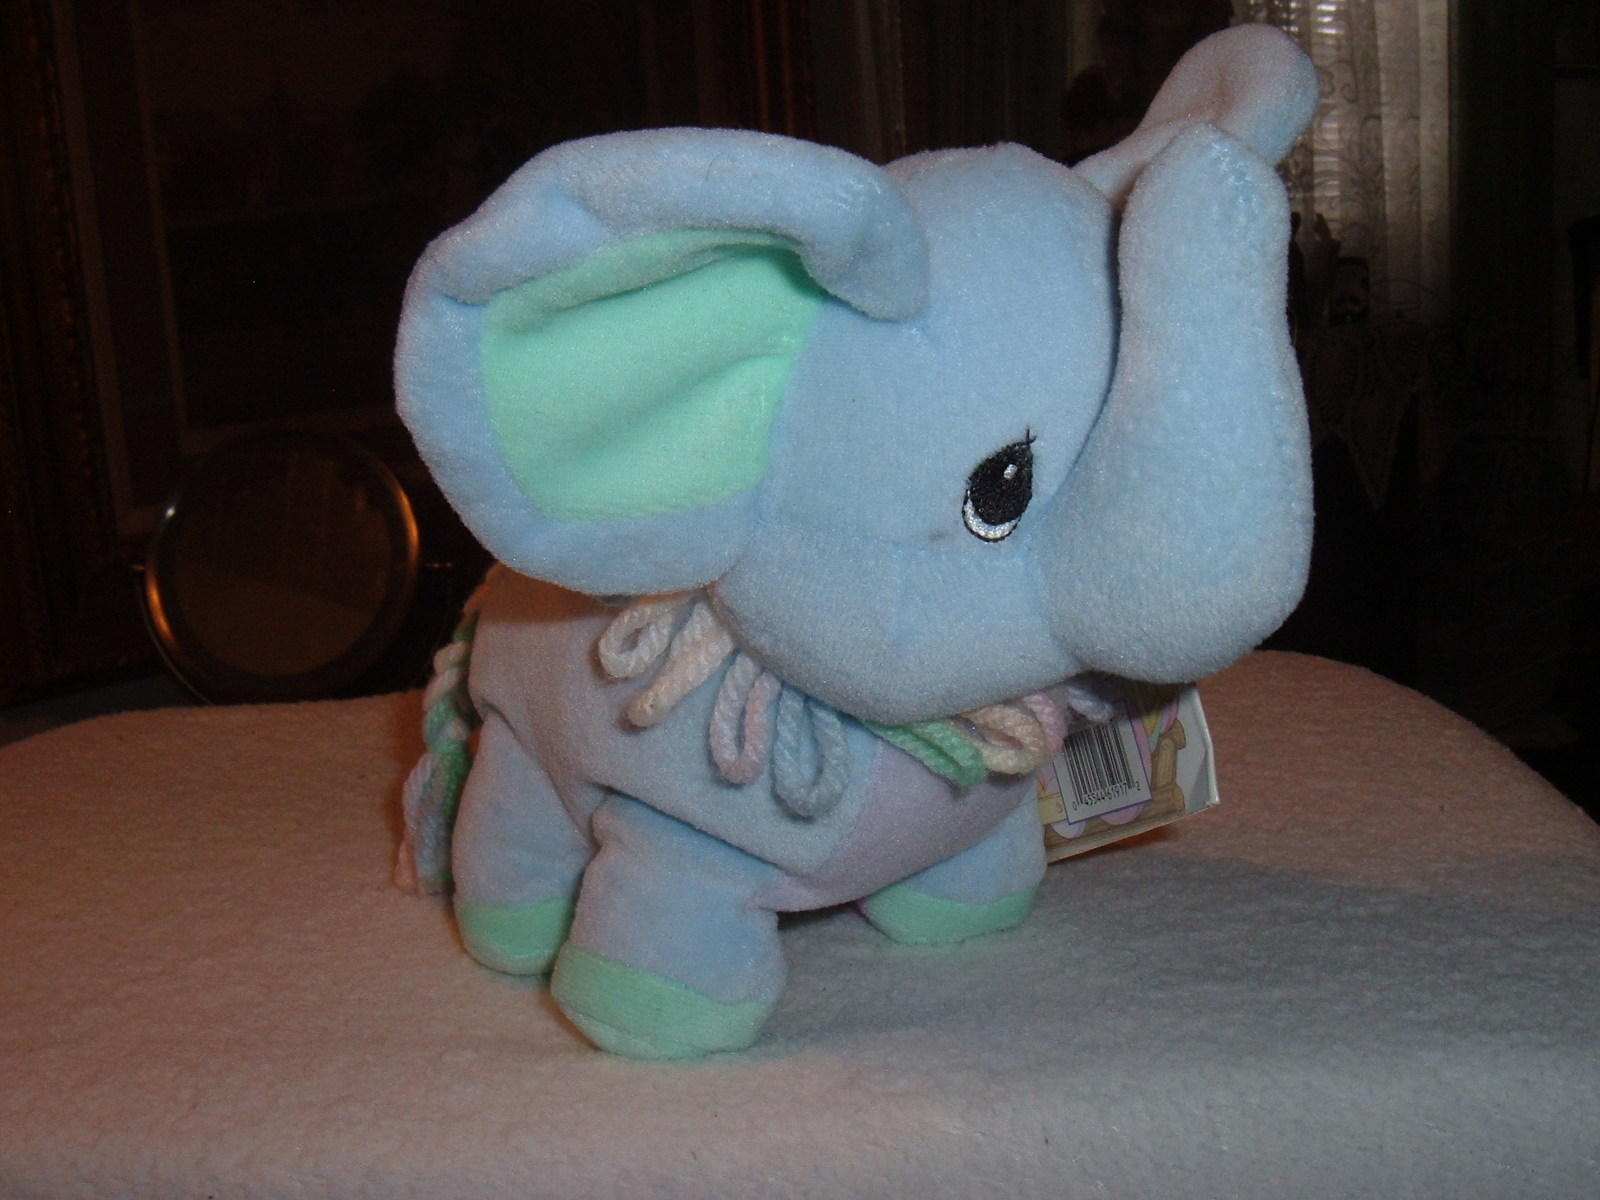 Precious Moments Tender Tails Age 4 Elephant Plush Stuffed Toy Doll Animal w/Tag image 6